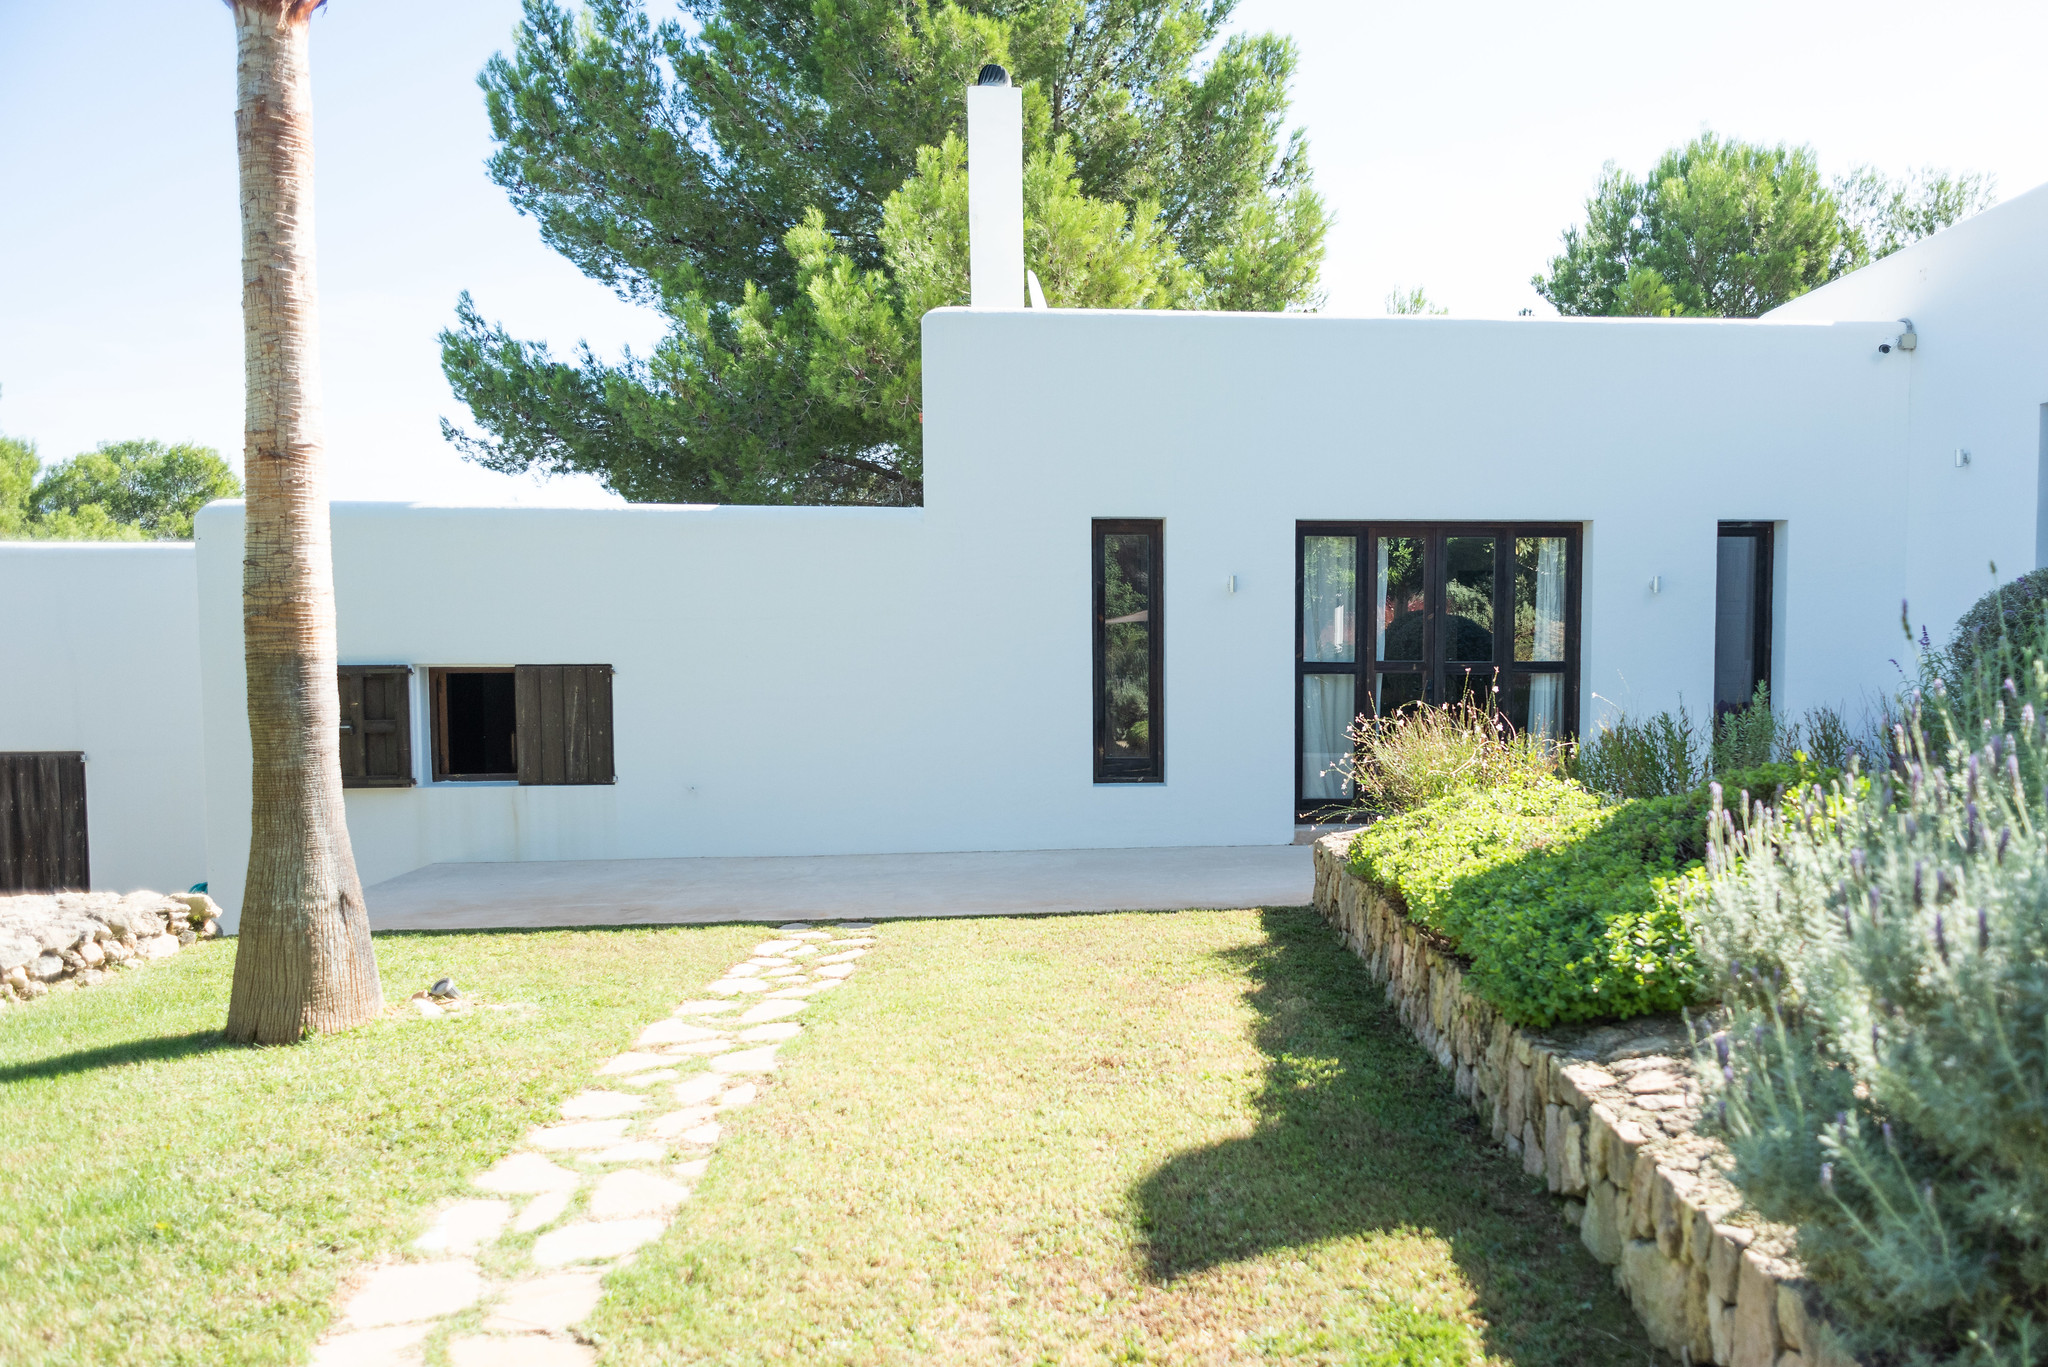 https://www.white-ibiza.com/wp-content/uploads/2020/06/white-ibiza-villas-casa-arabella-exterior-outside.jpg